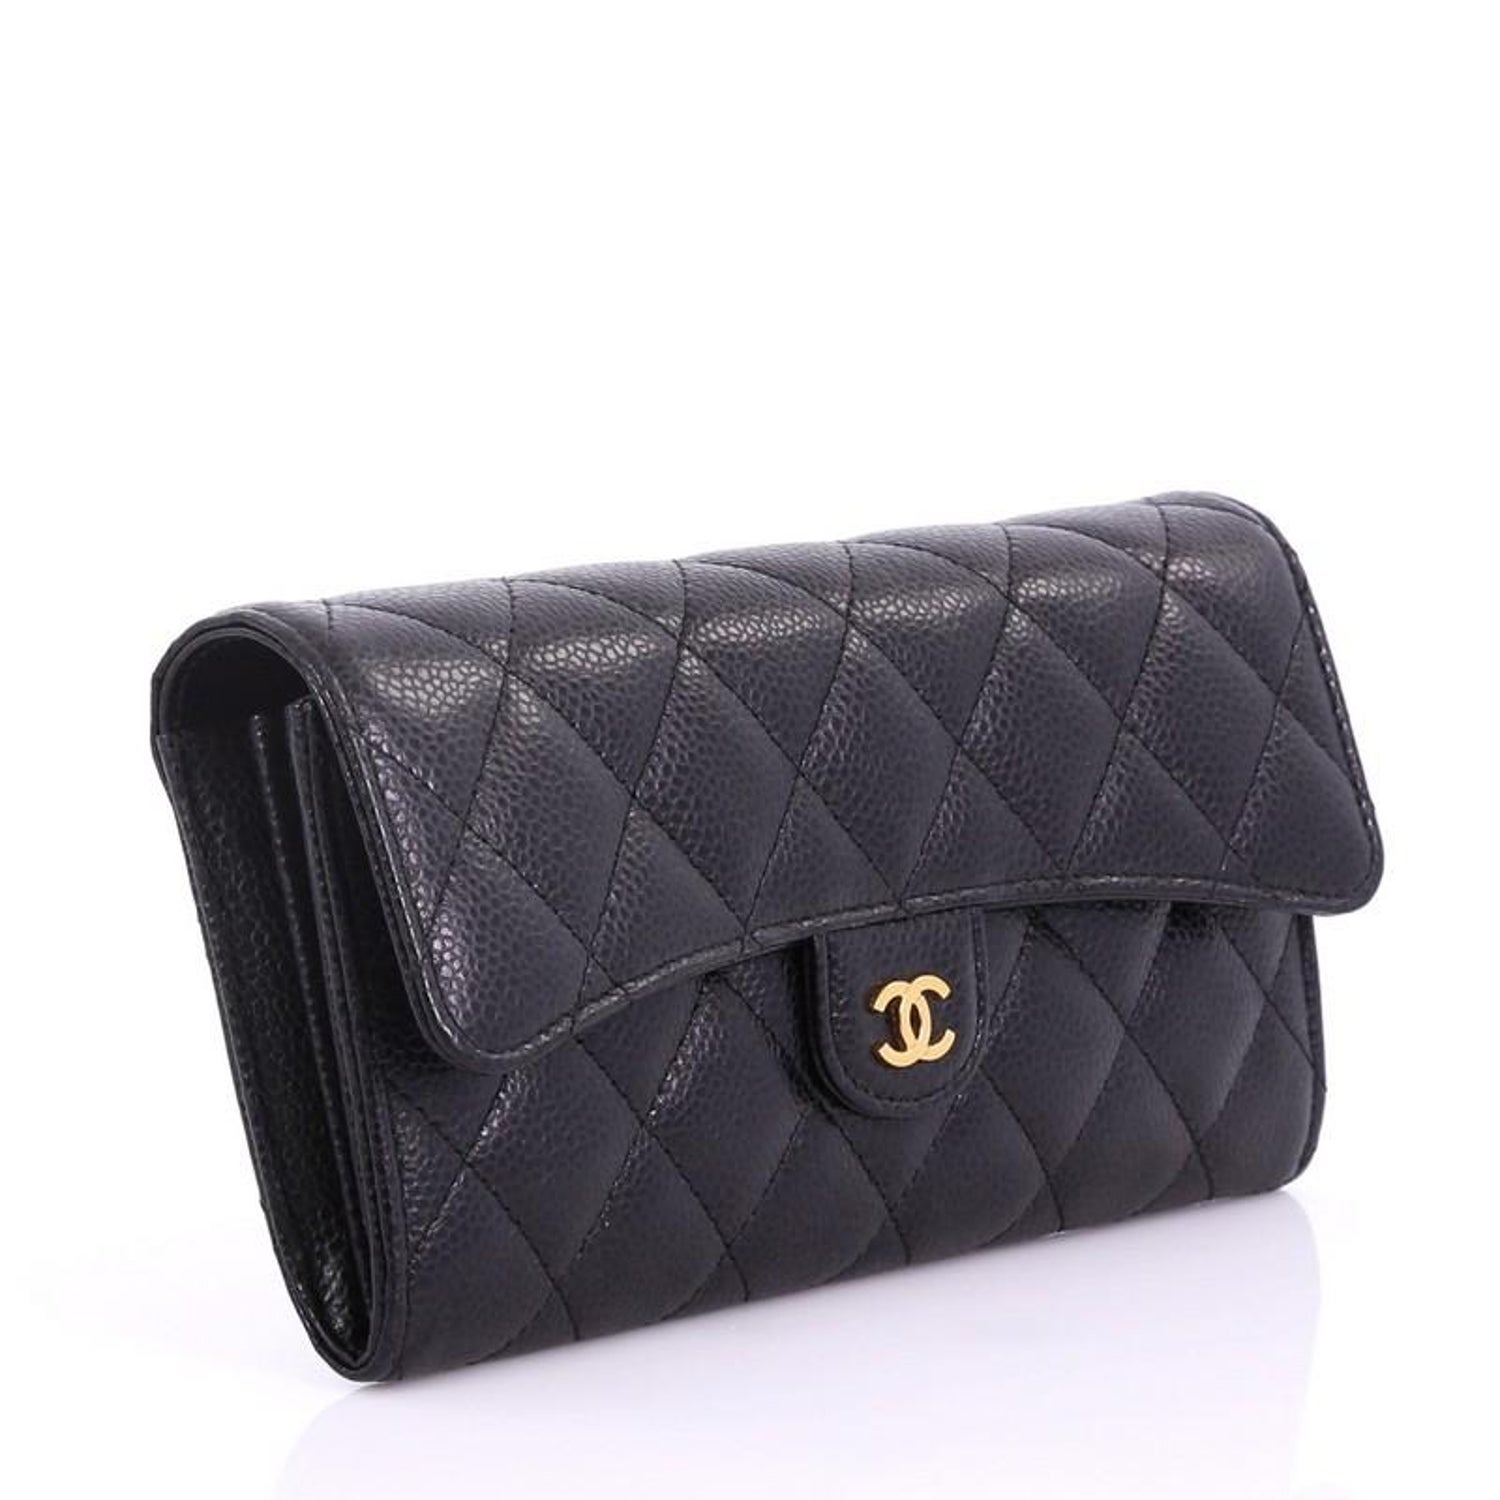 53142a1b885499 Chanel CC Gusset Classic Flap Wallet Quilted Caviar Long at 1stdibs